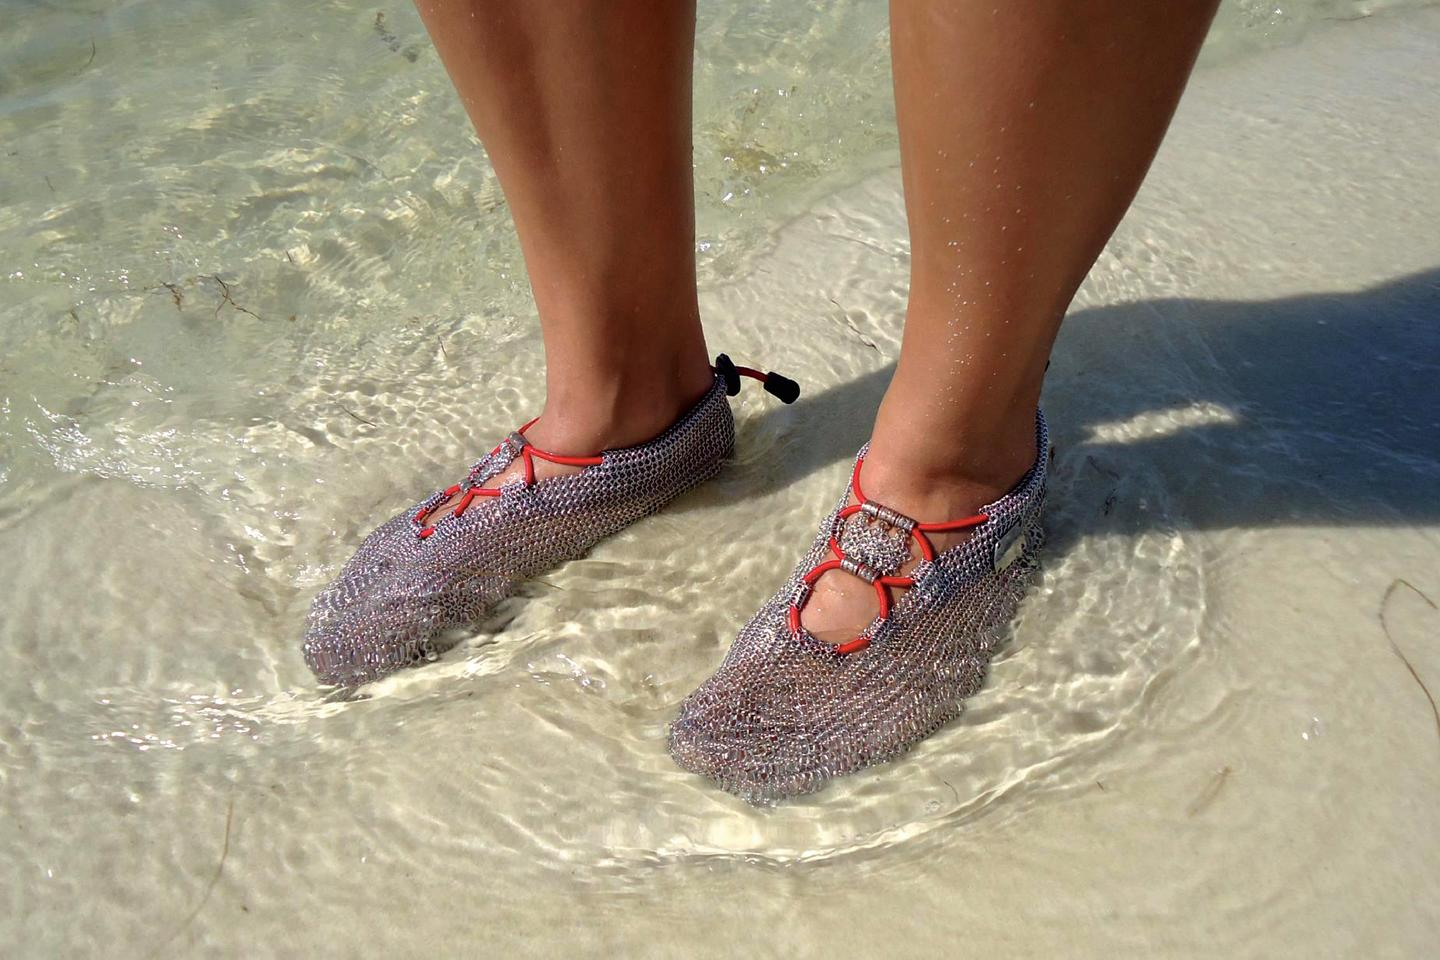 PaleoBarefoots allow you to feel the water